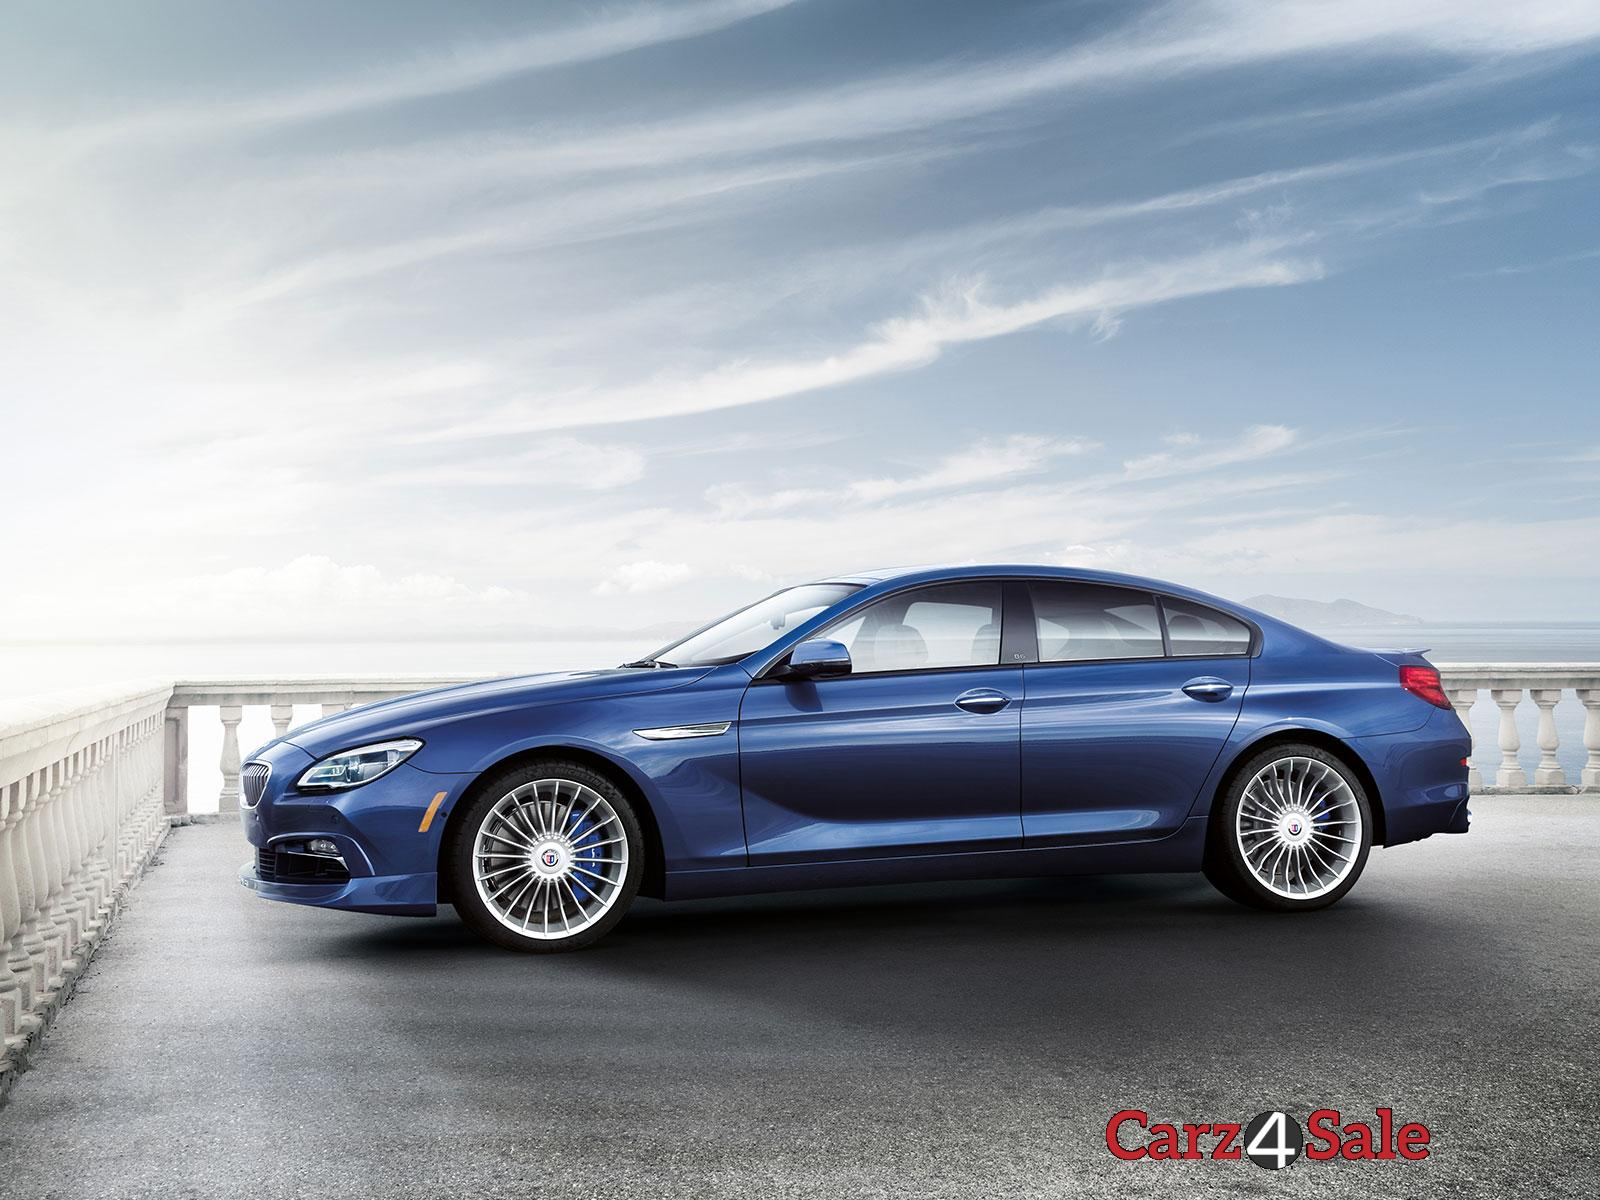 Bmw Alpina B6 Xdrive Gran Coupe Side View